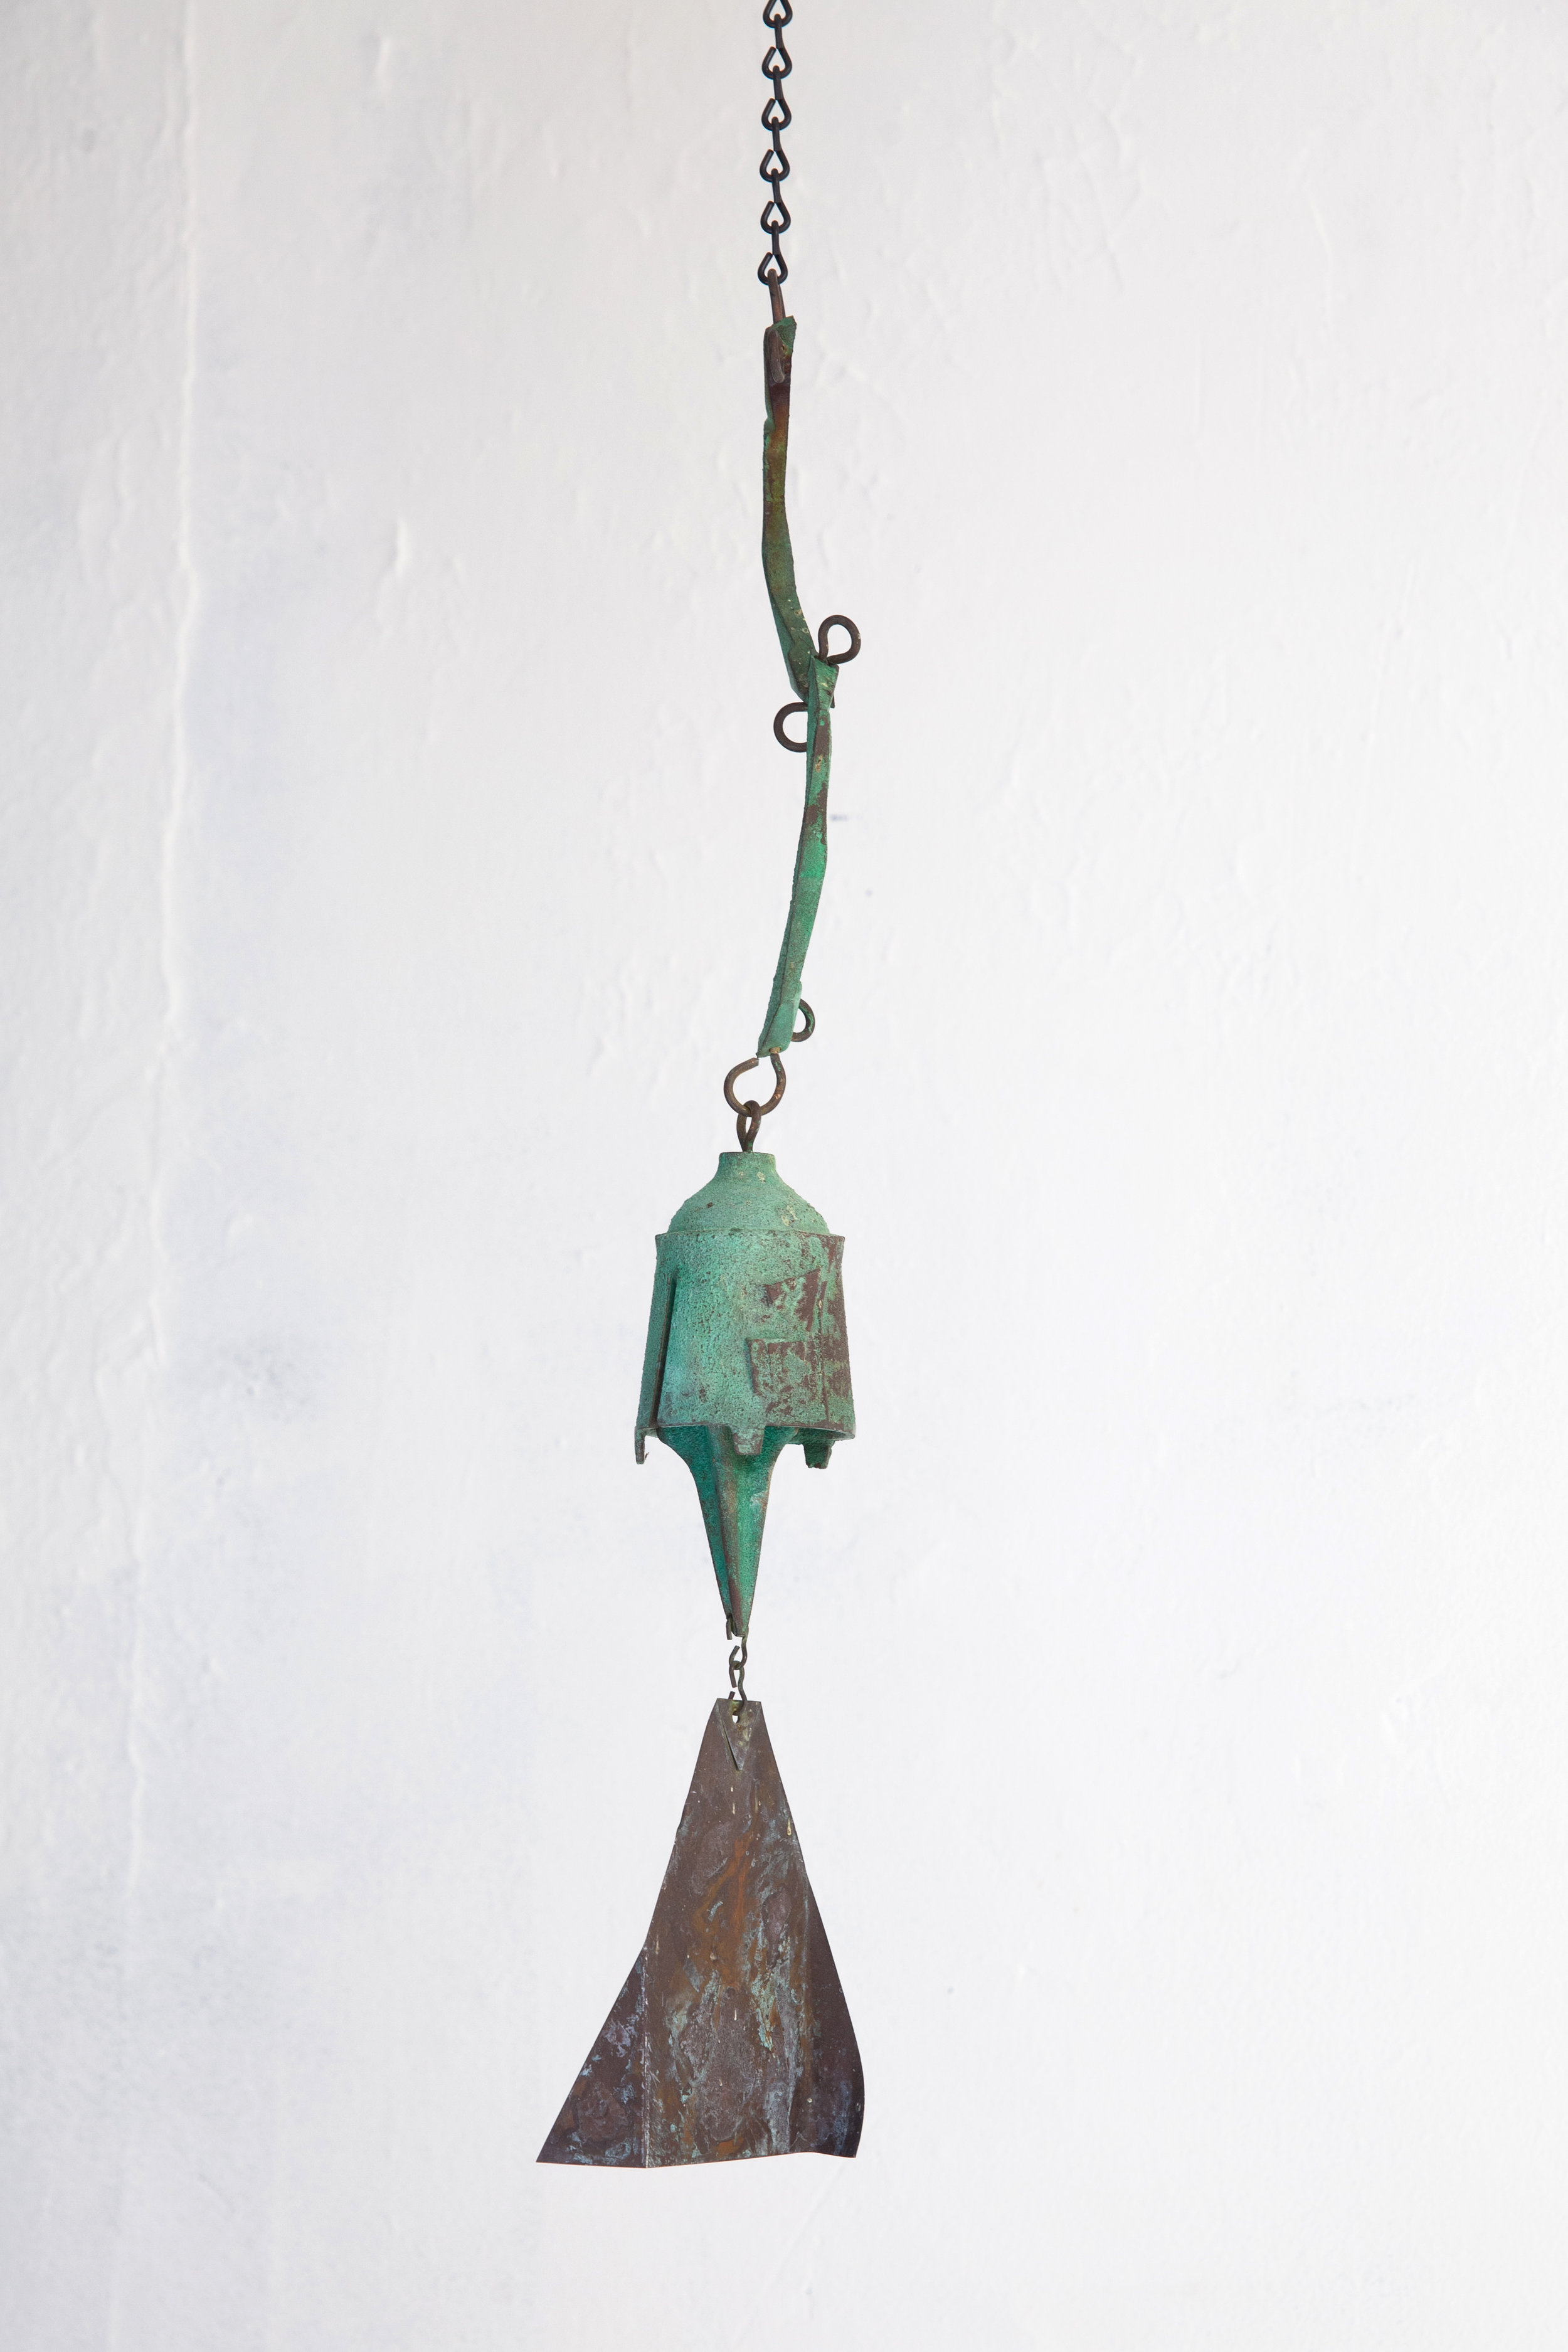 Paolo Soleri  Untitled (Bronze Bell) , Circa 1980s - 90s Bronze 21.5 x 4 inches